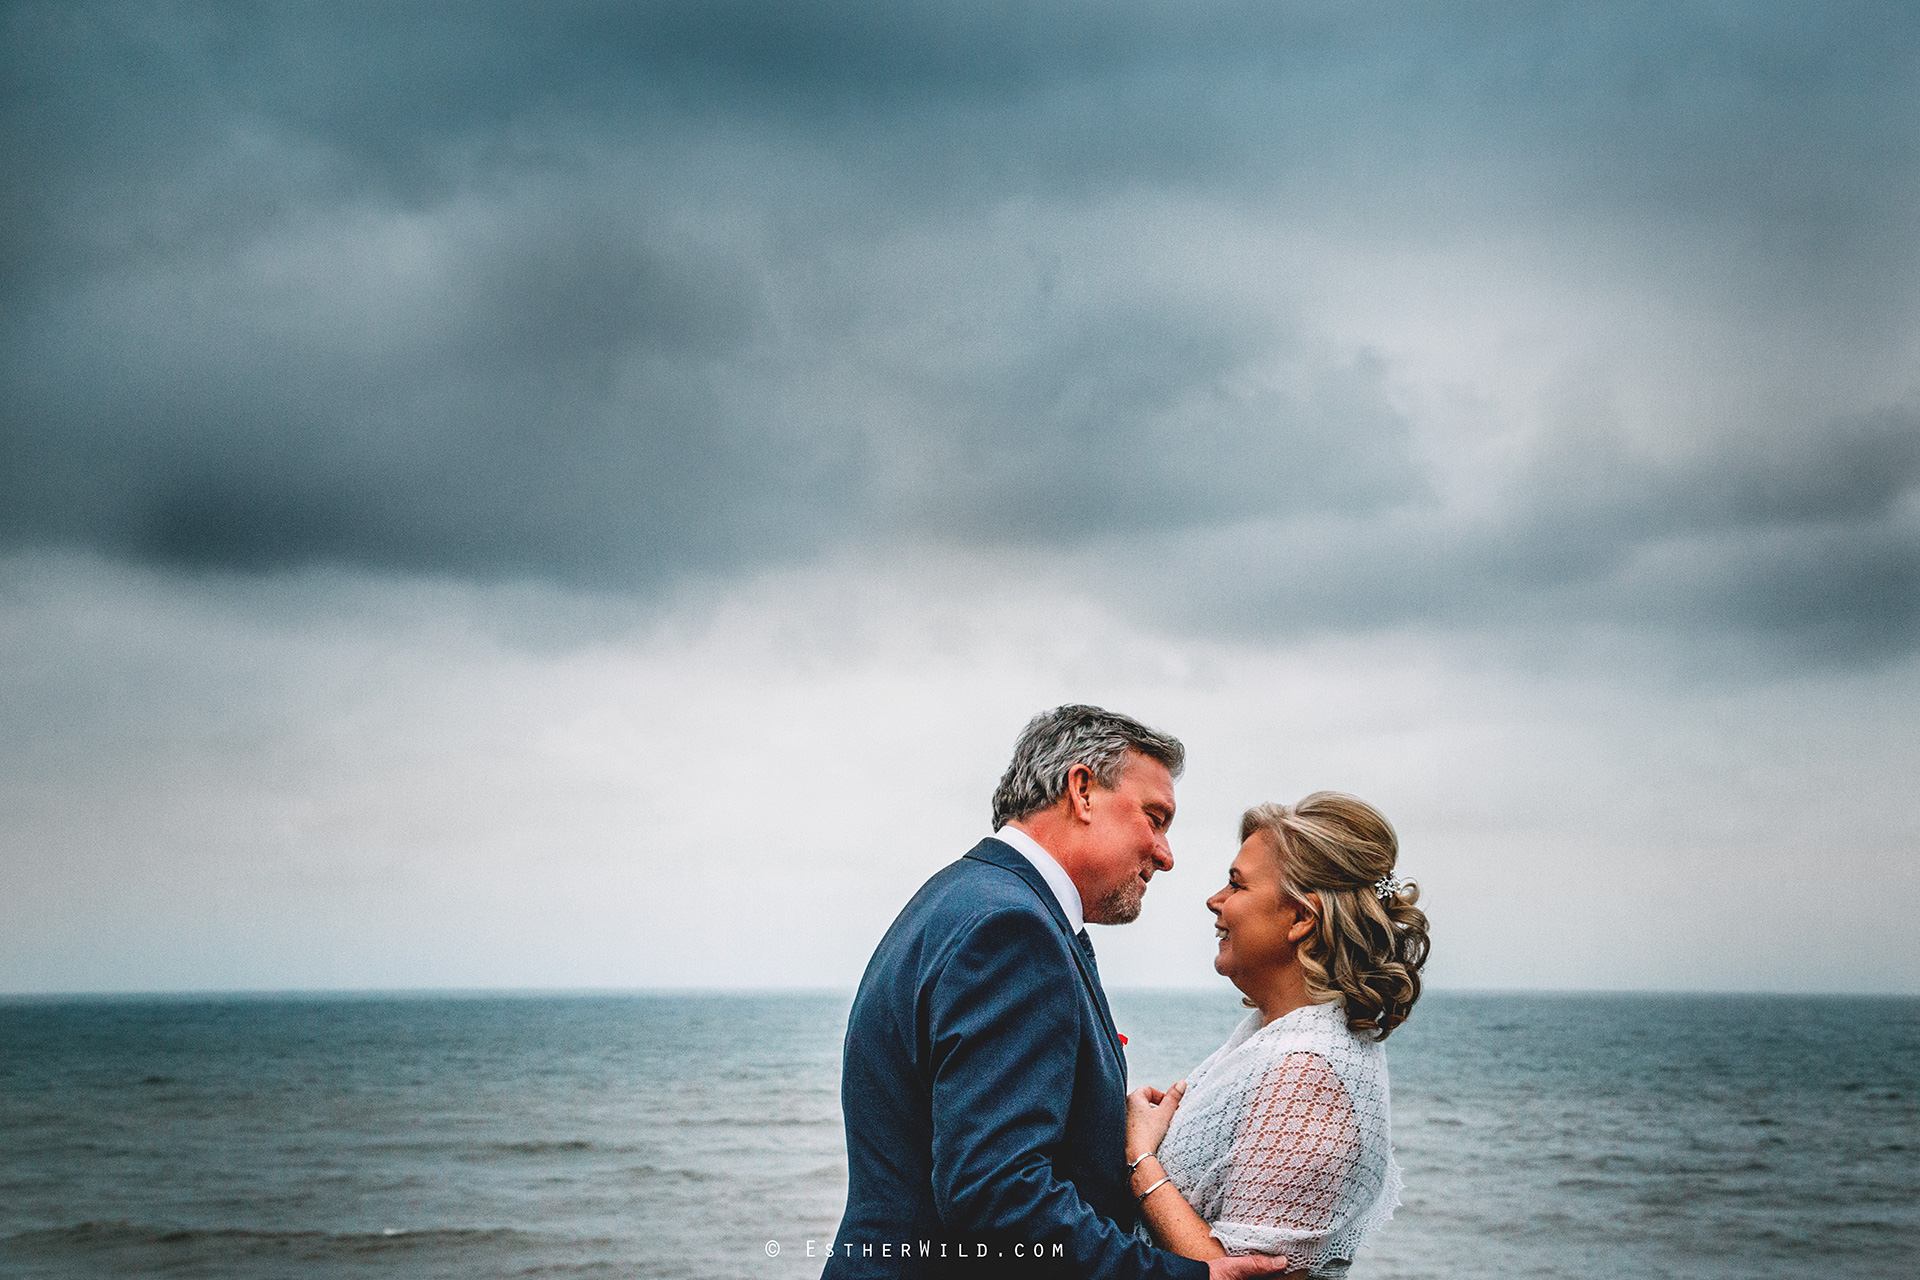 © Norfolk Wedding Photography Cromer Rocket House Registry Sea Beach Esther Wild Photographer (304).jpg